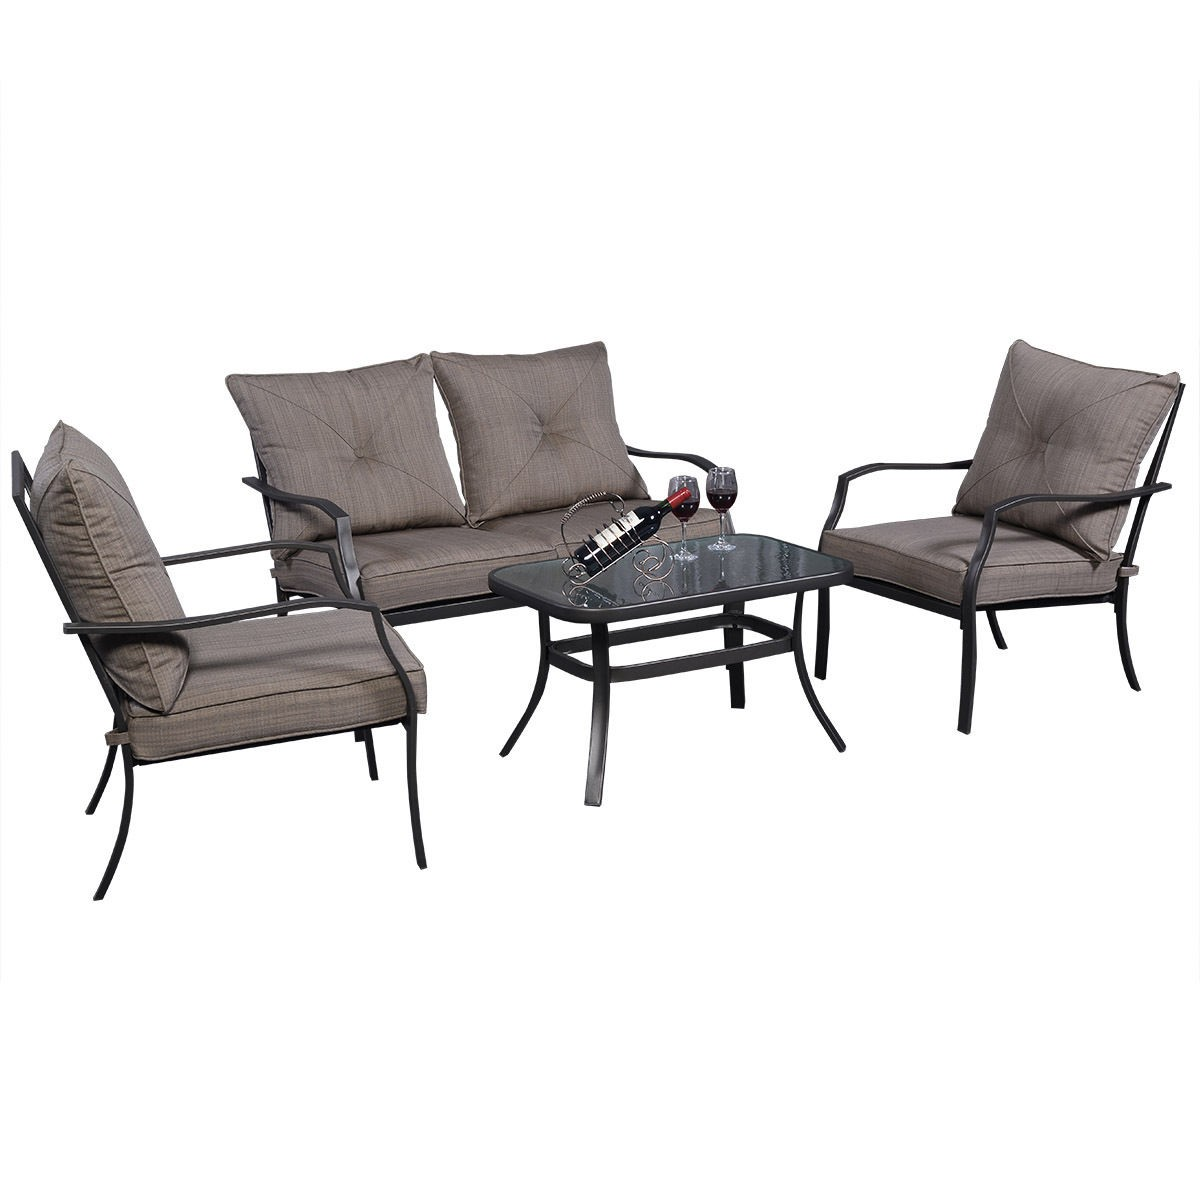 4 PCS Patio Furniture Set Tea Table Chairs Outdoor Garden Pool Steel Fr